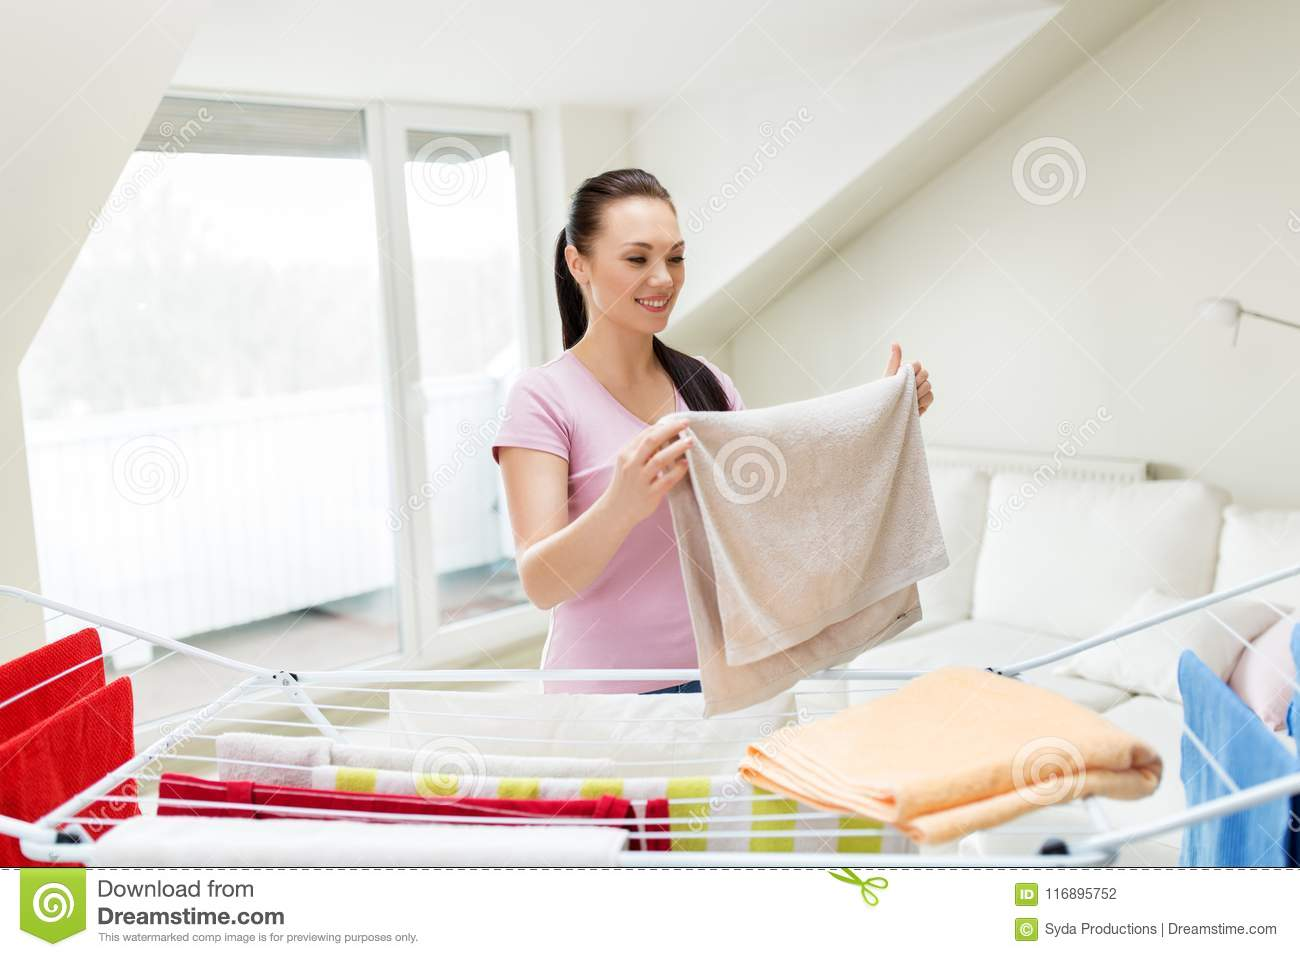 Criticism advise Amateur housewife doing laundry apologise, but